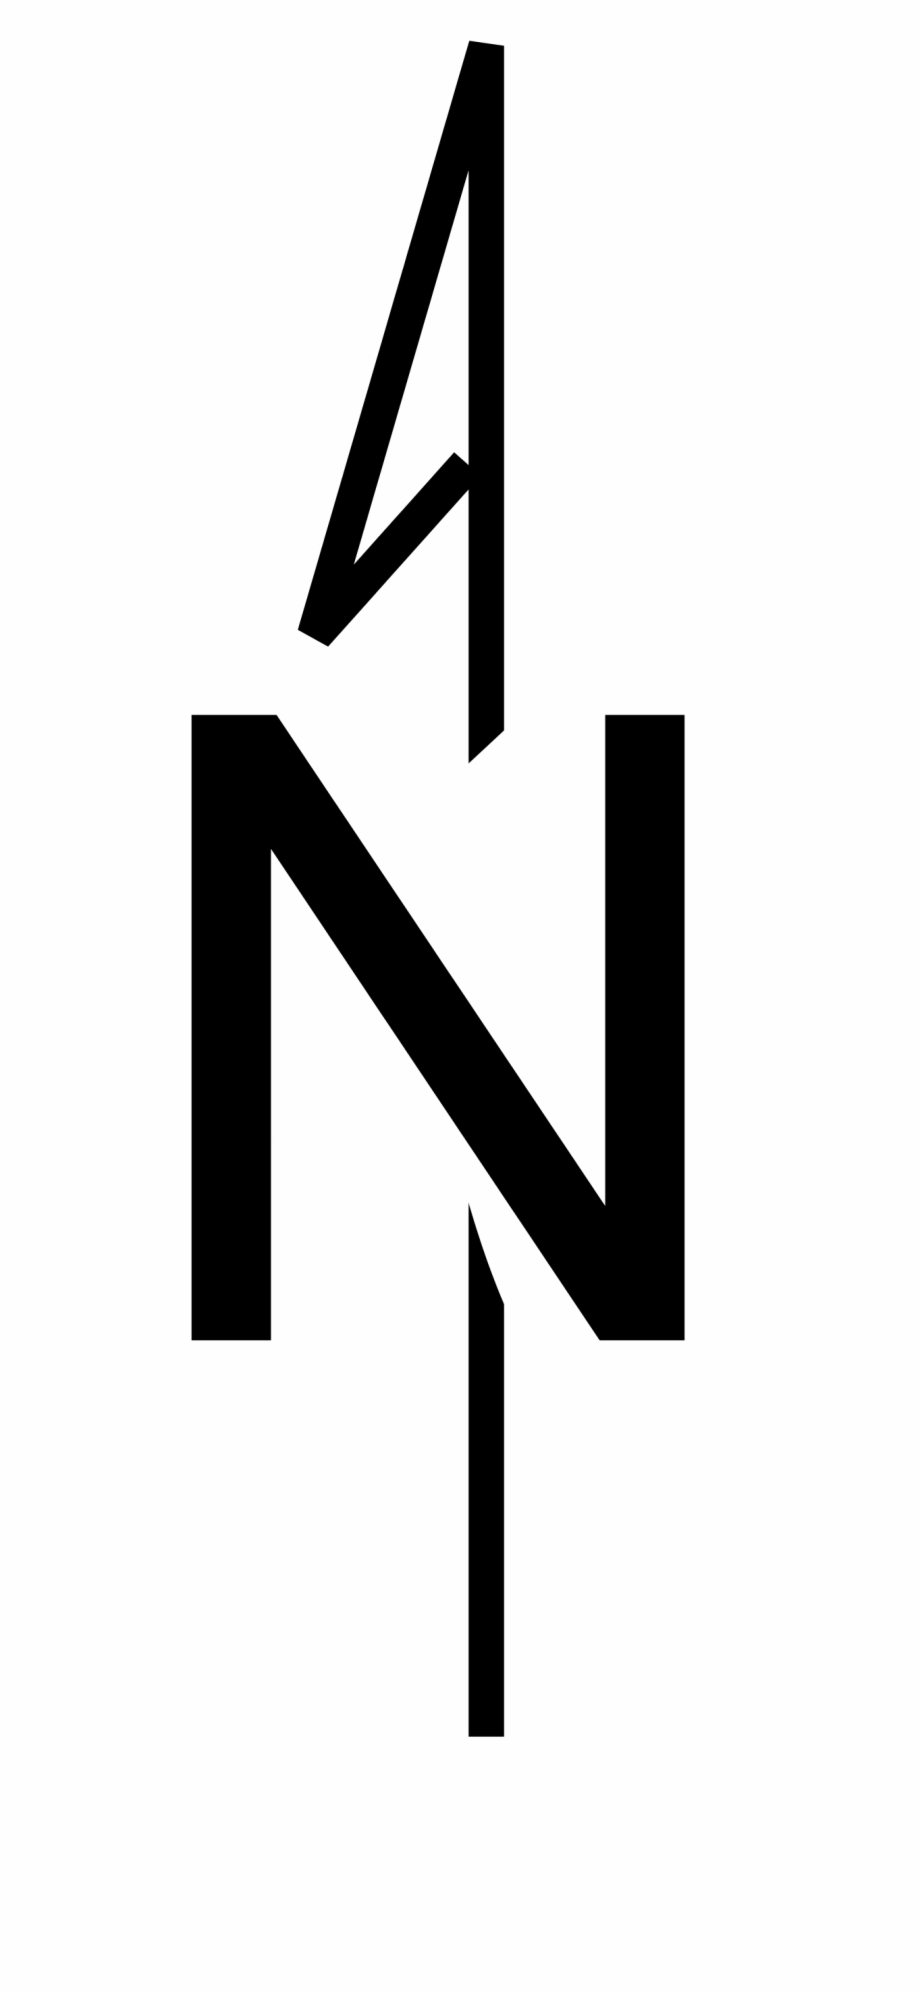 North sign clipart png black and white library Steampunk Clipart North Arrow - Compass Rose North Only Free PNG ... png black and white library